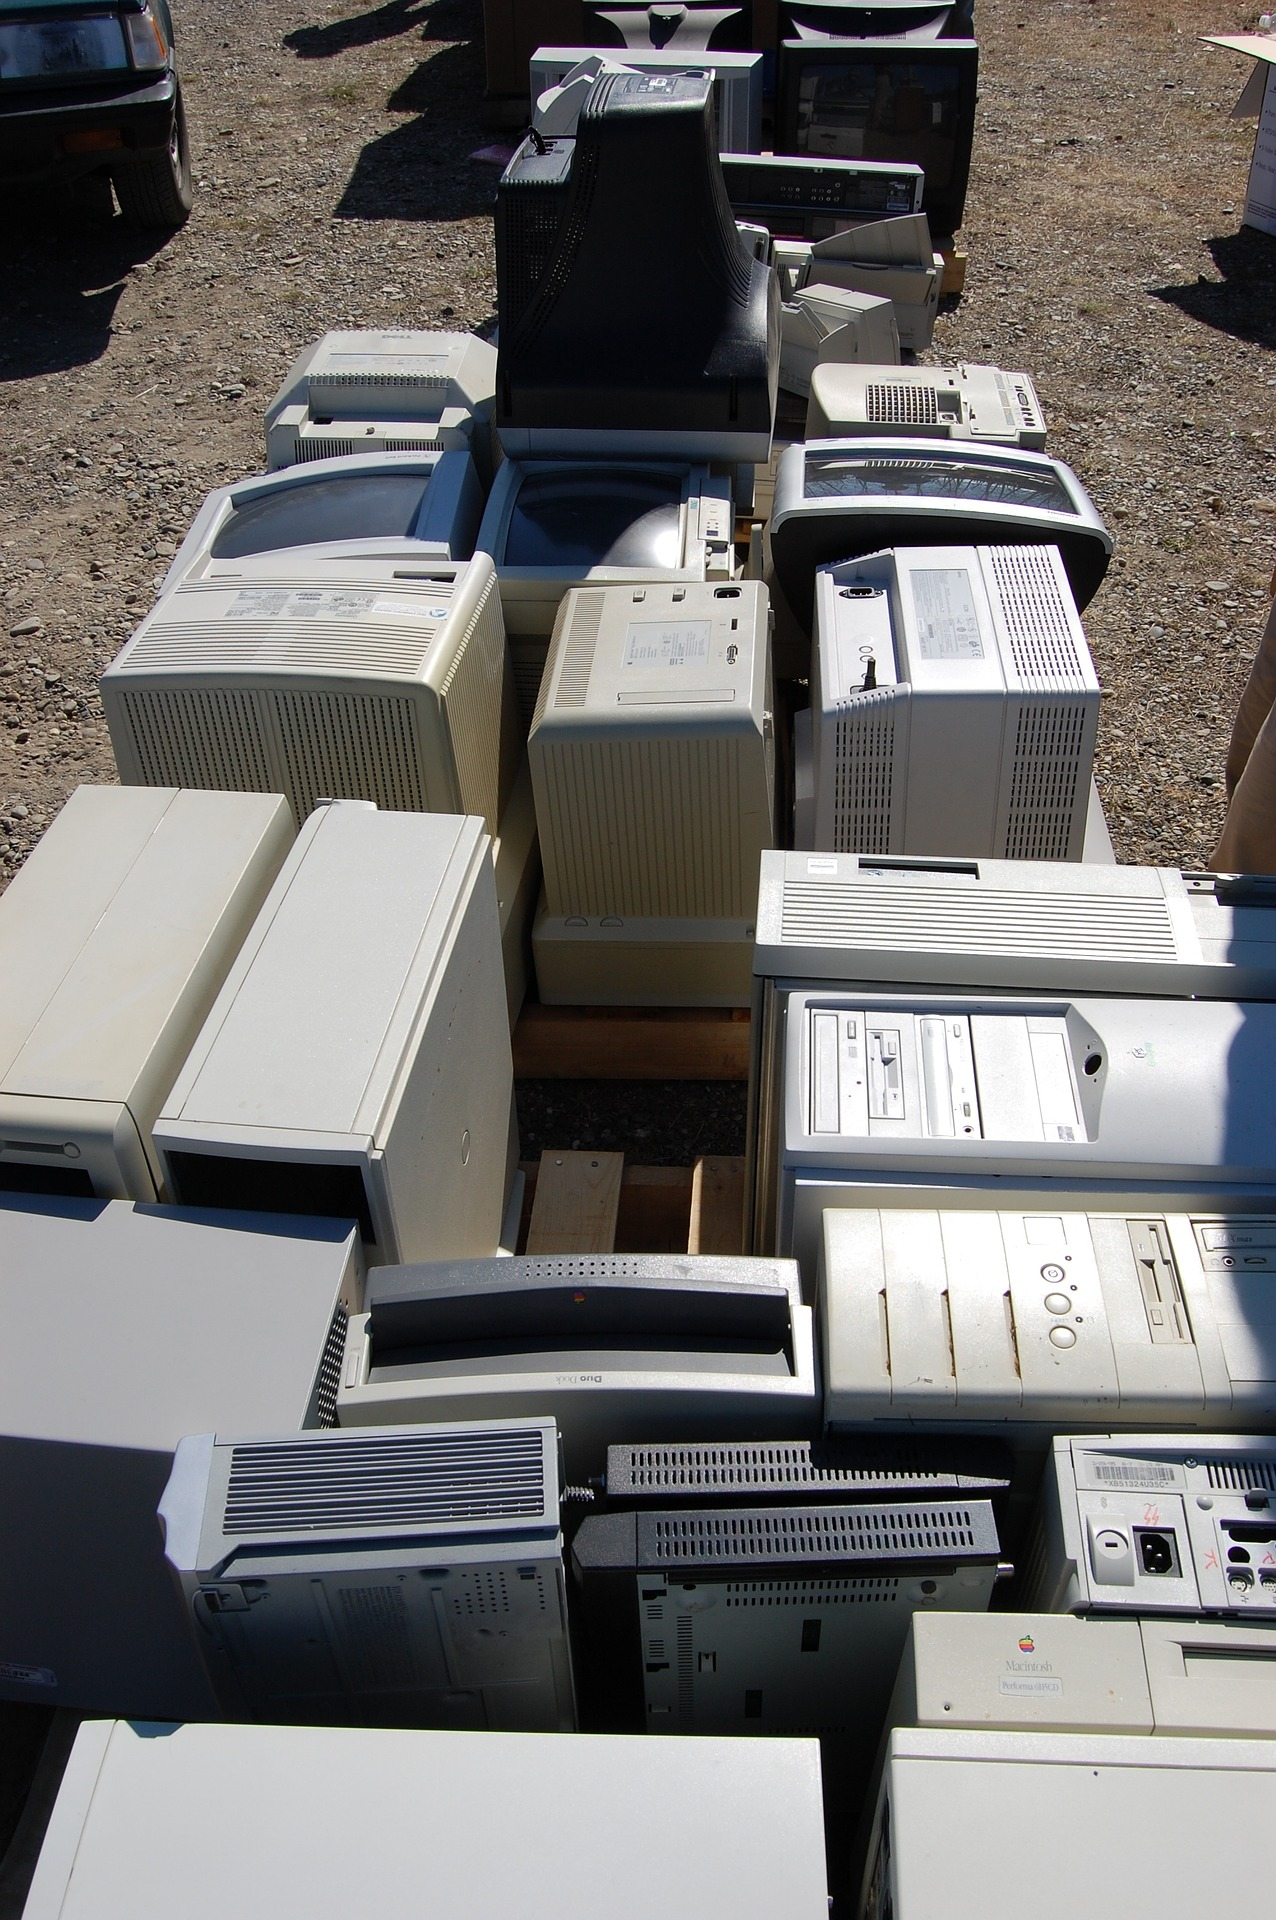 pile of old computer towers